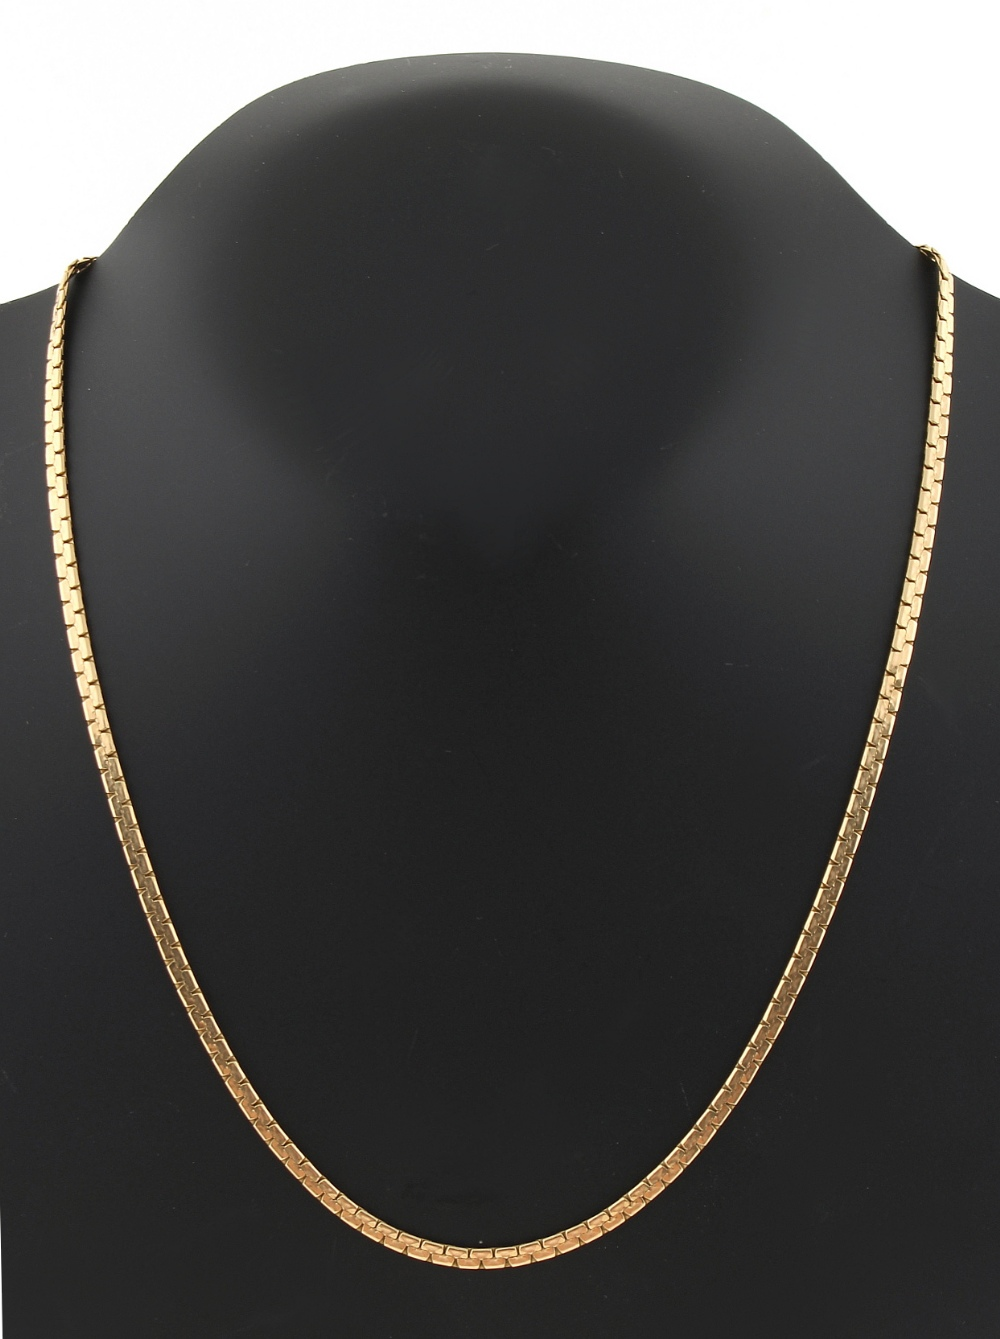 Property of a deceased estate - a 14ct yellow fold flat curb link chain necklace, 19.3ins. (